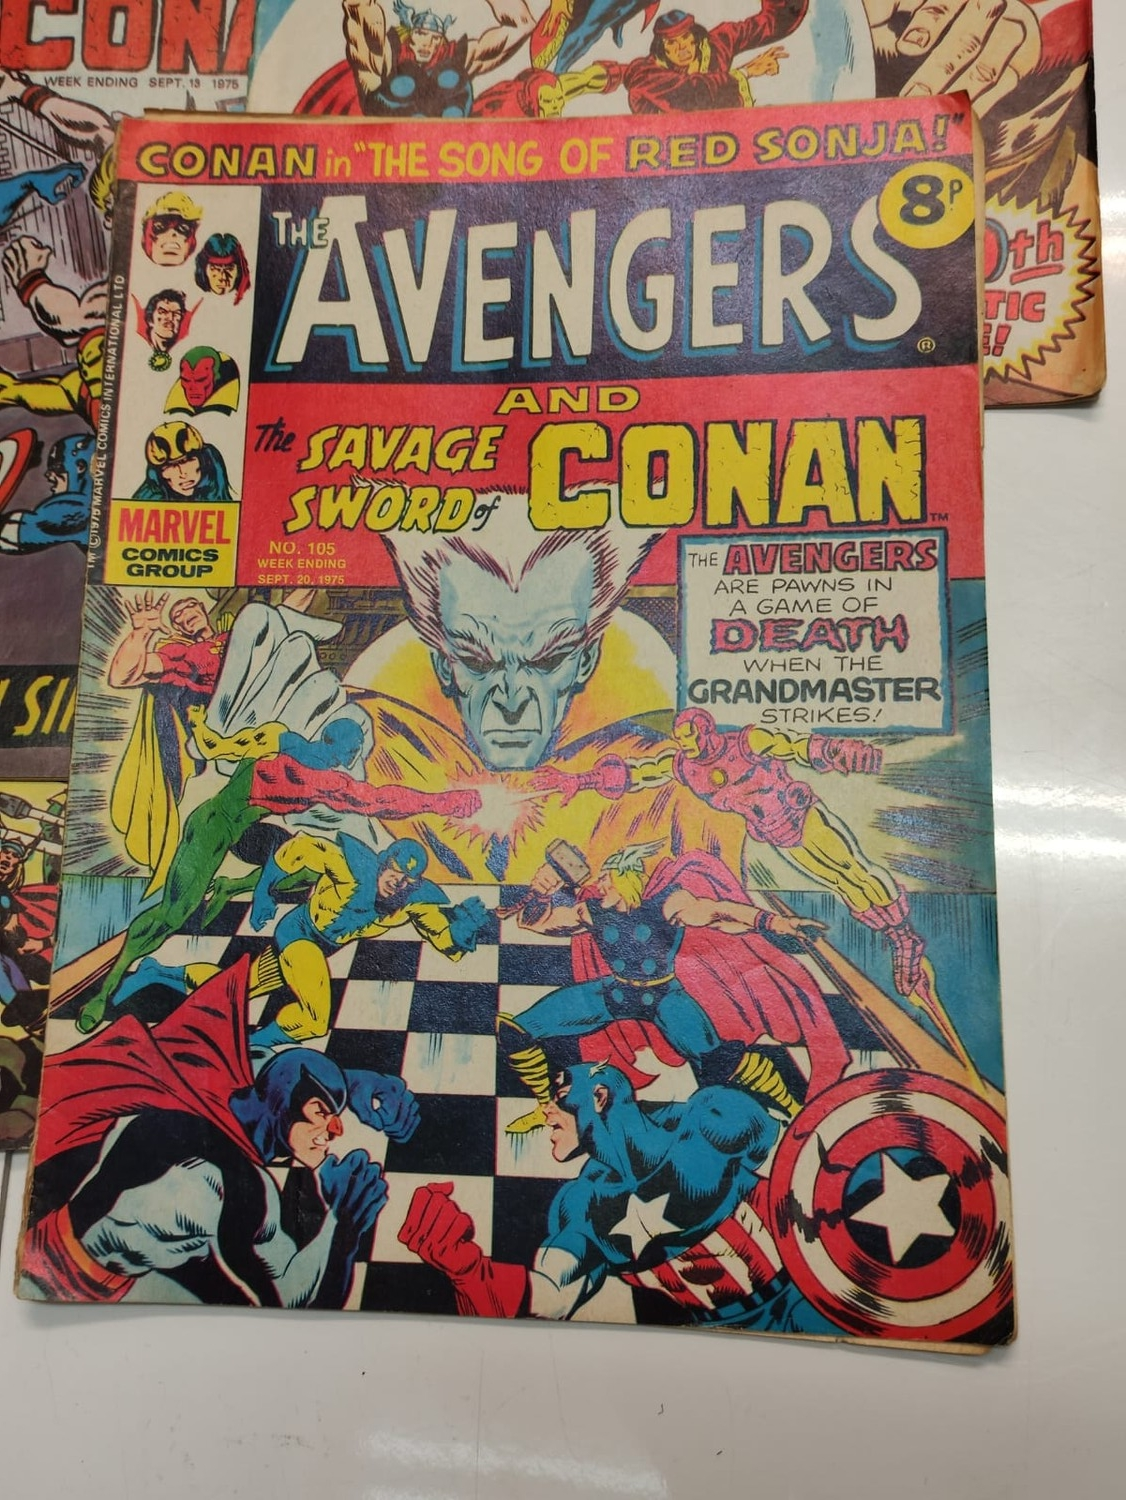 25 x Marvel comics. The Avengers. Dating from 1974-1976 - Image 18 of 18